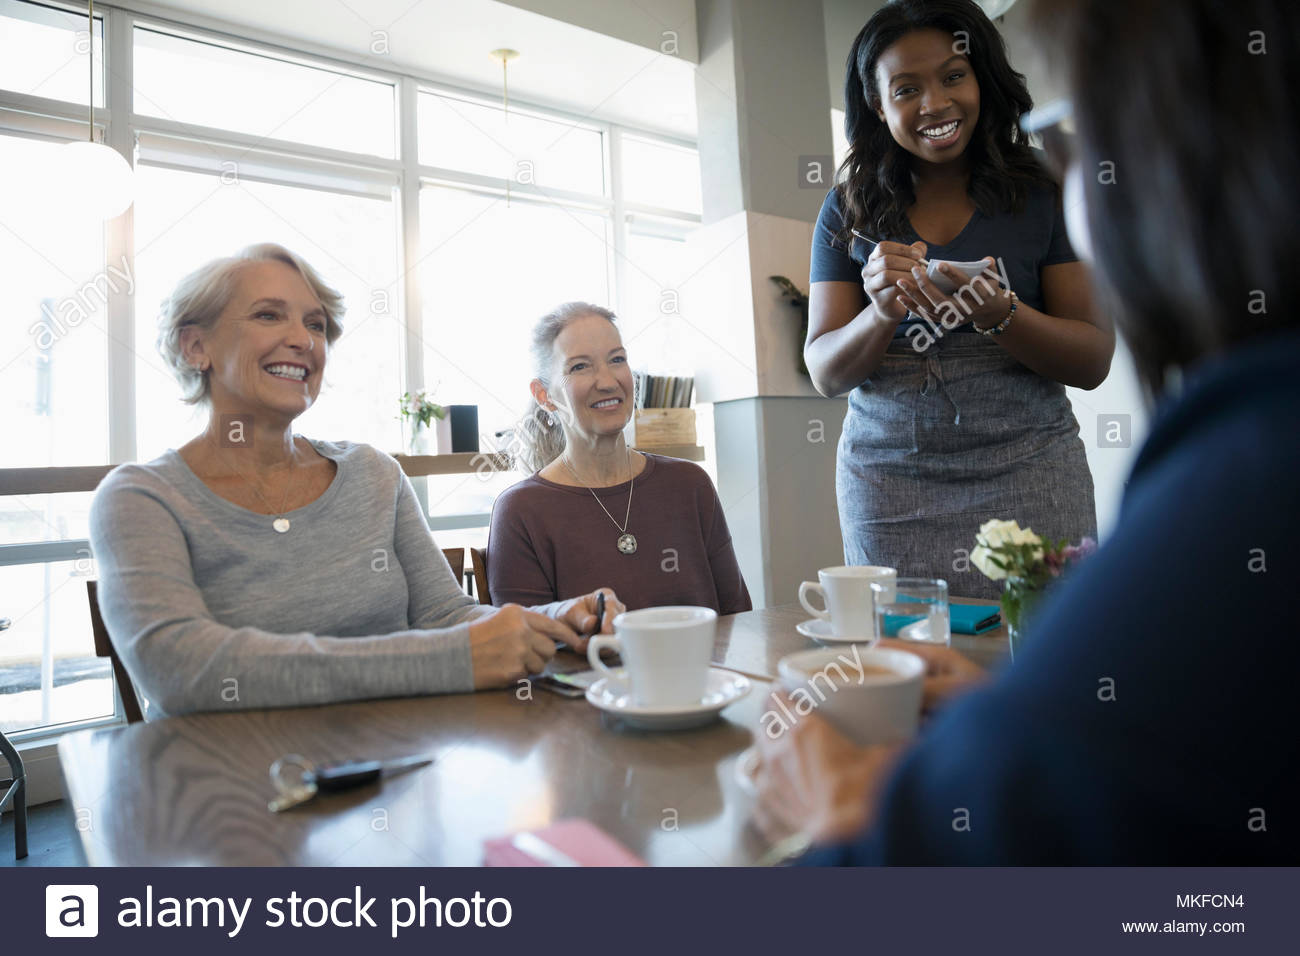 Active senior women friends ordering from waitress in cafe - Stock Image